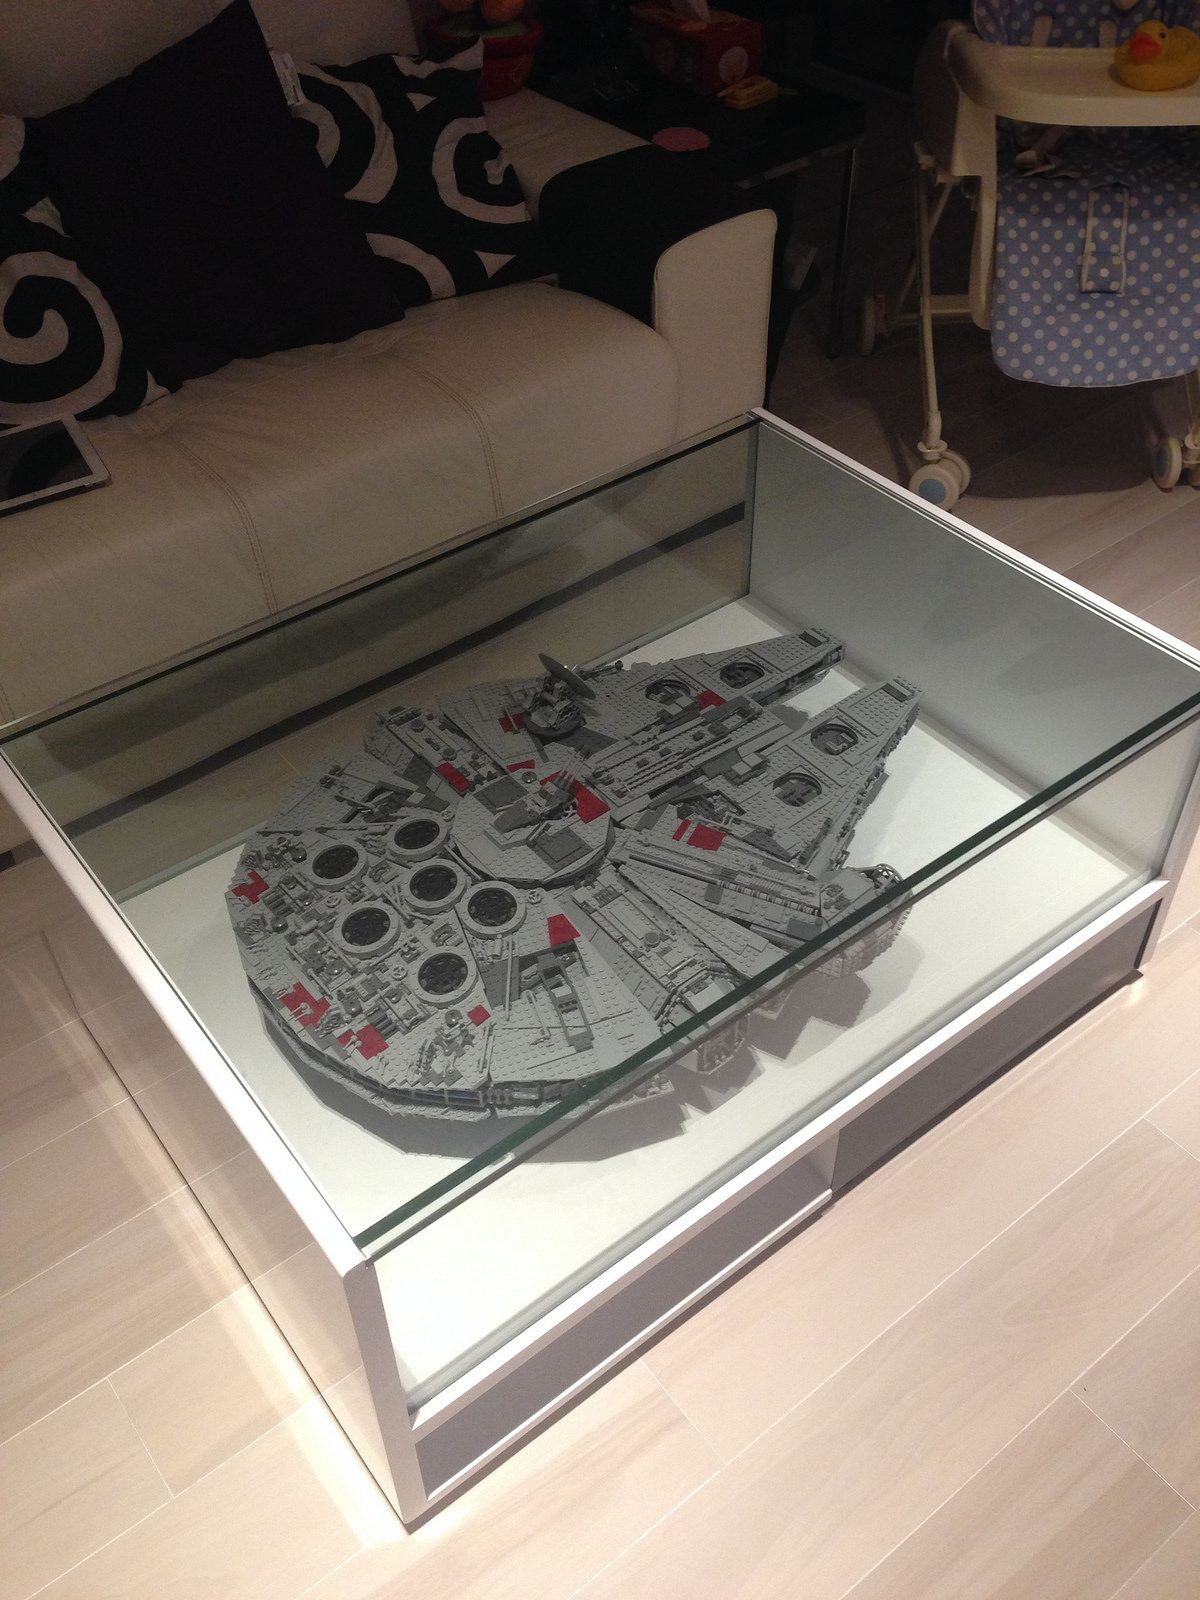 Ikea Granas Coffee Table Become Awesome Display Case Lego Display Case Display Coffee Table Display Case [ 850 x 1089 Pixel ]